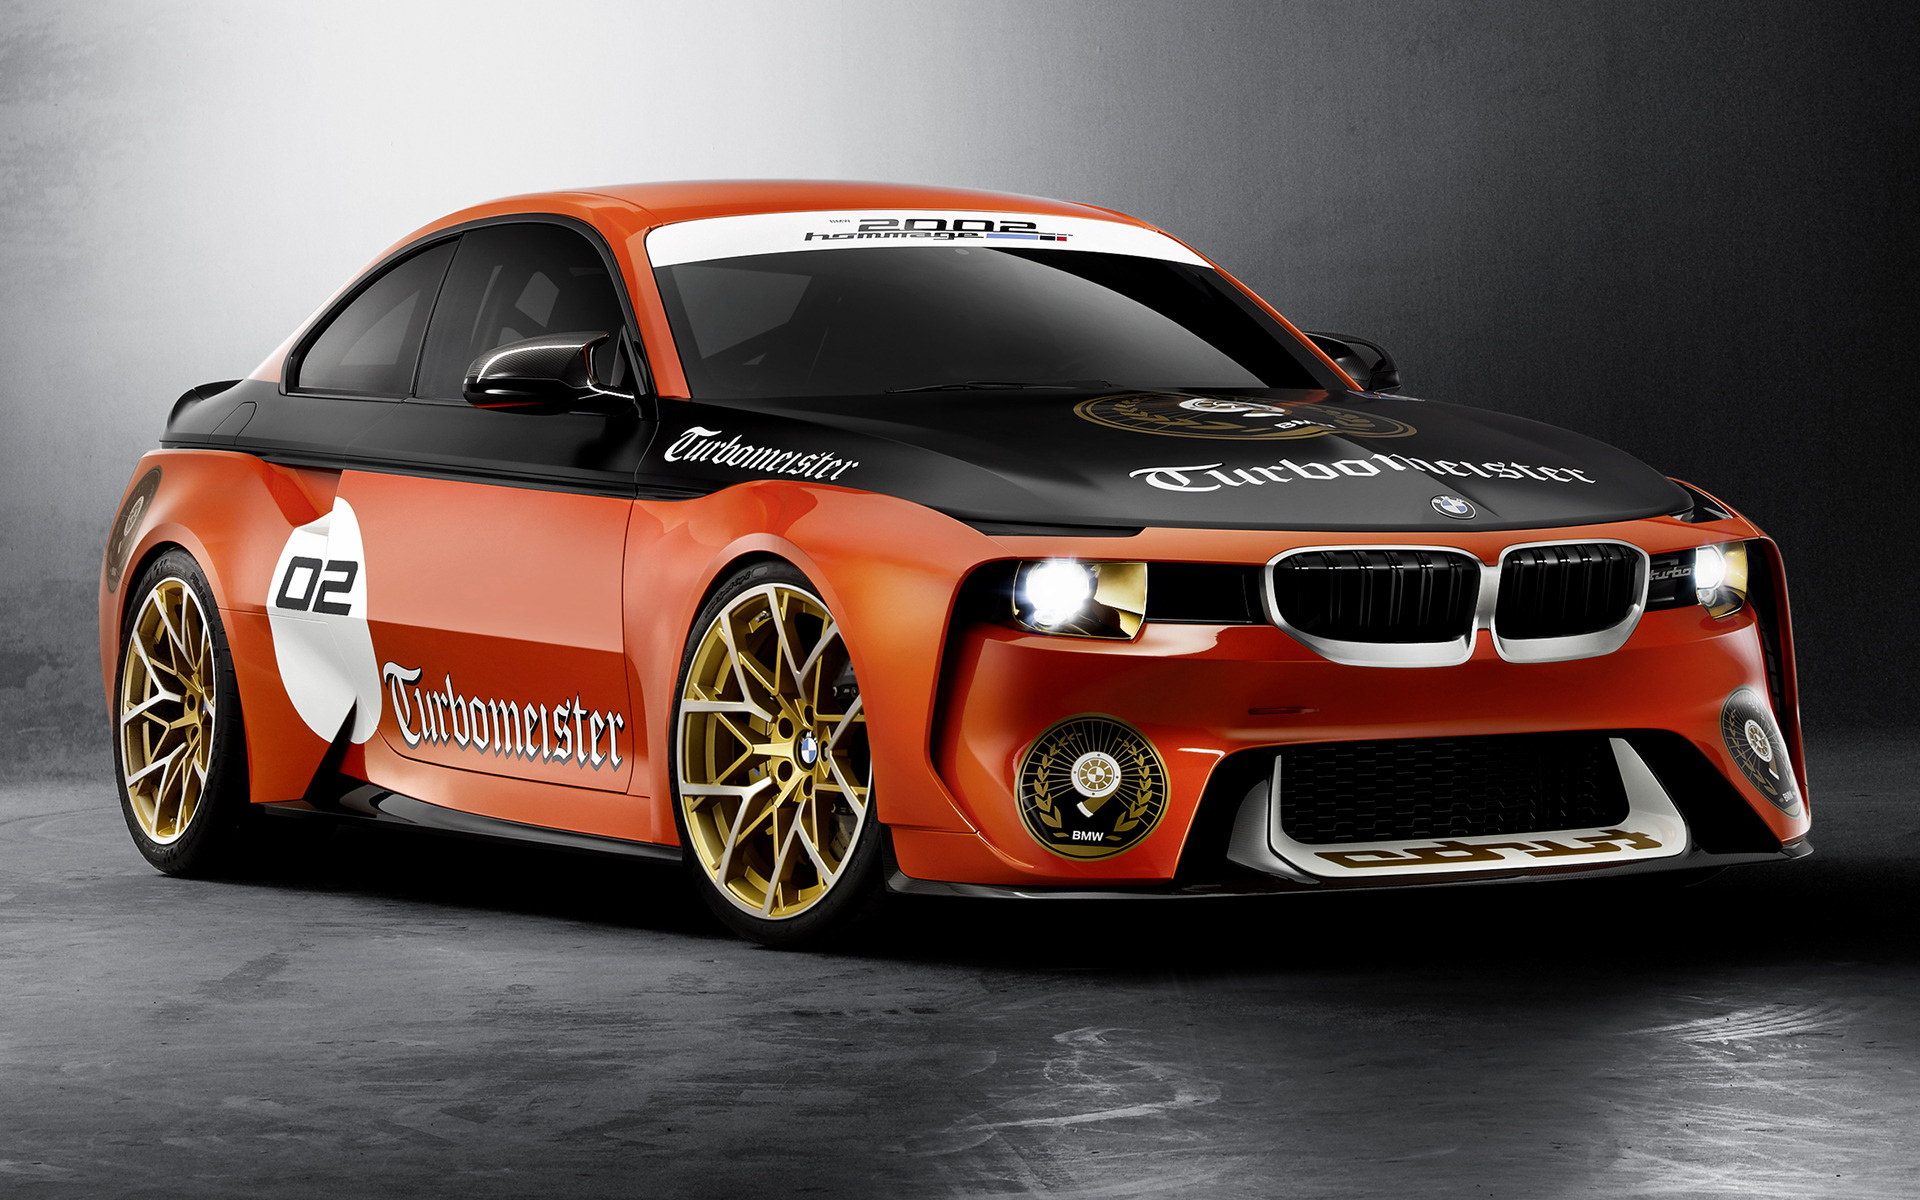 2016 BMW 2002 Hommage Turbomeister Edition - Wallpapers ...